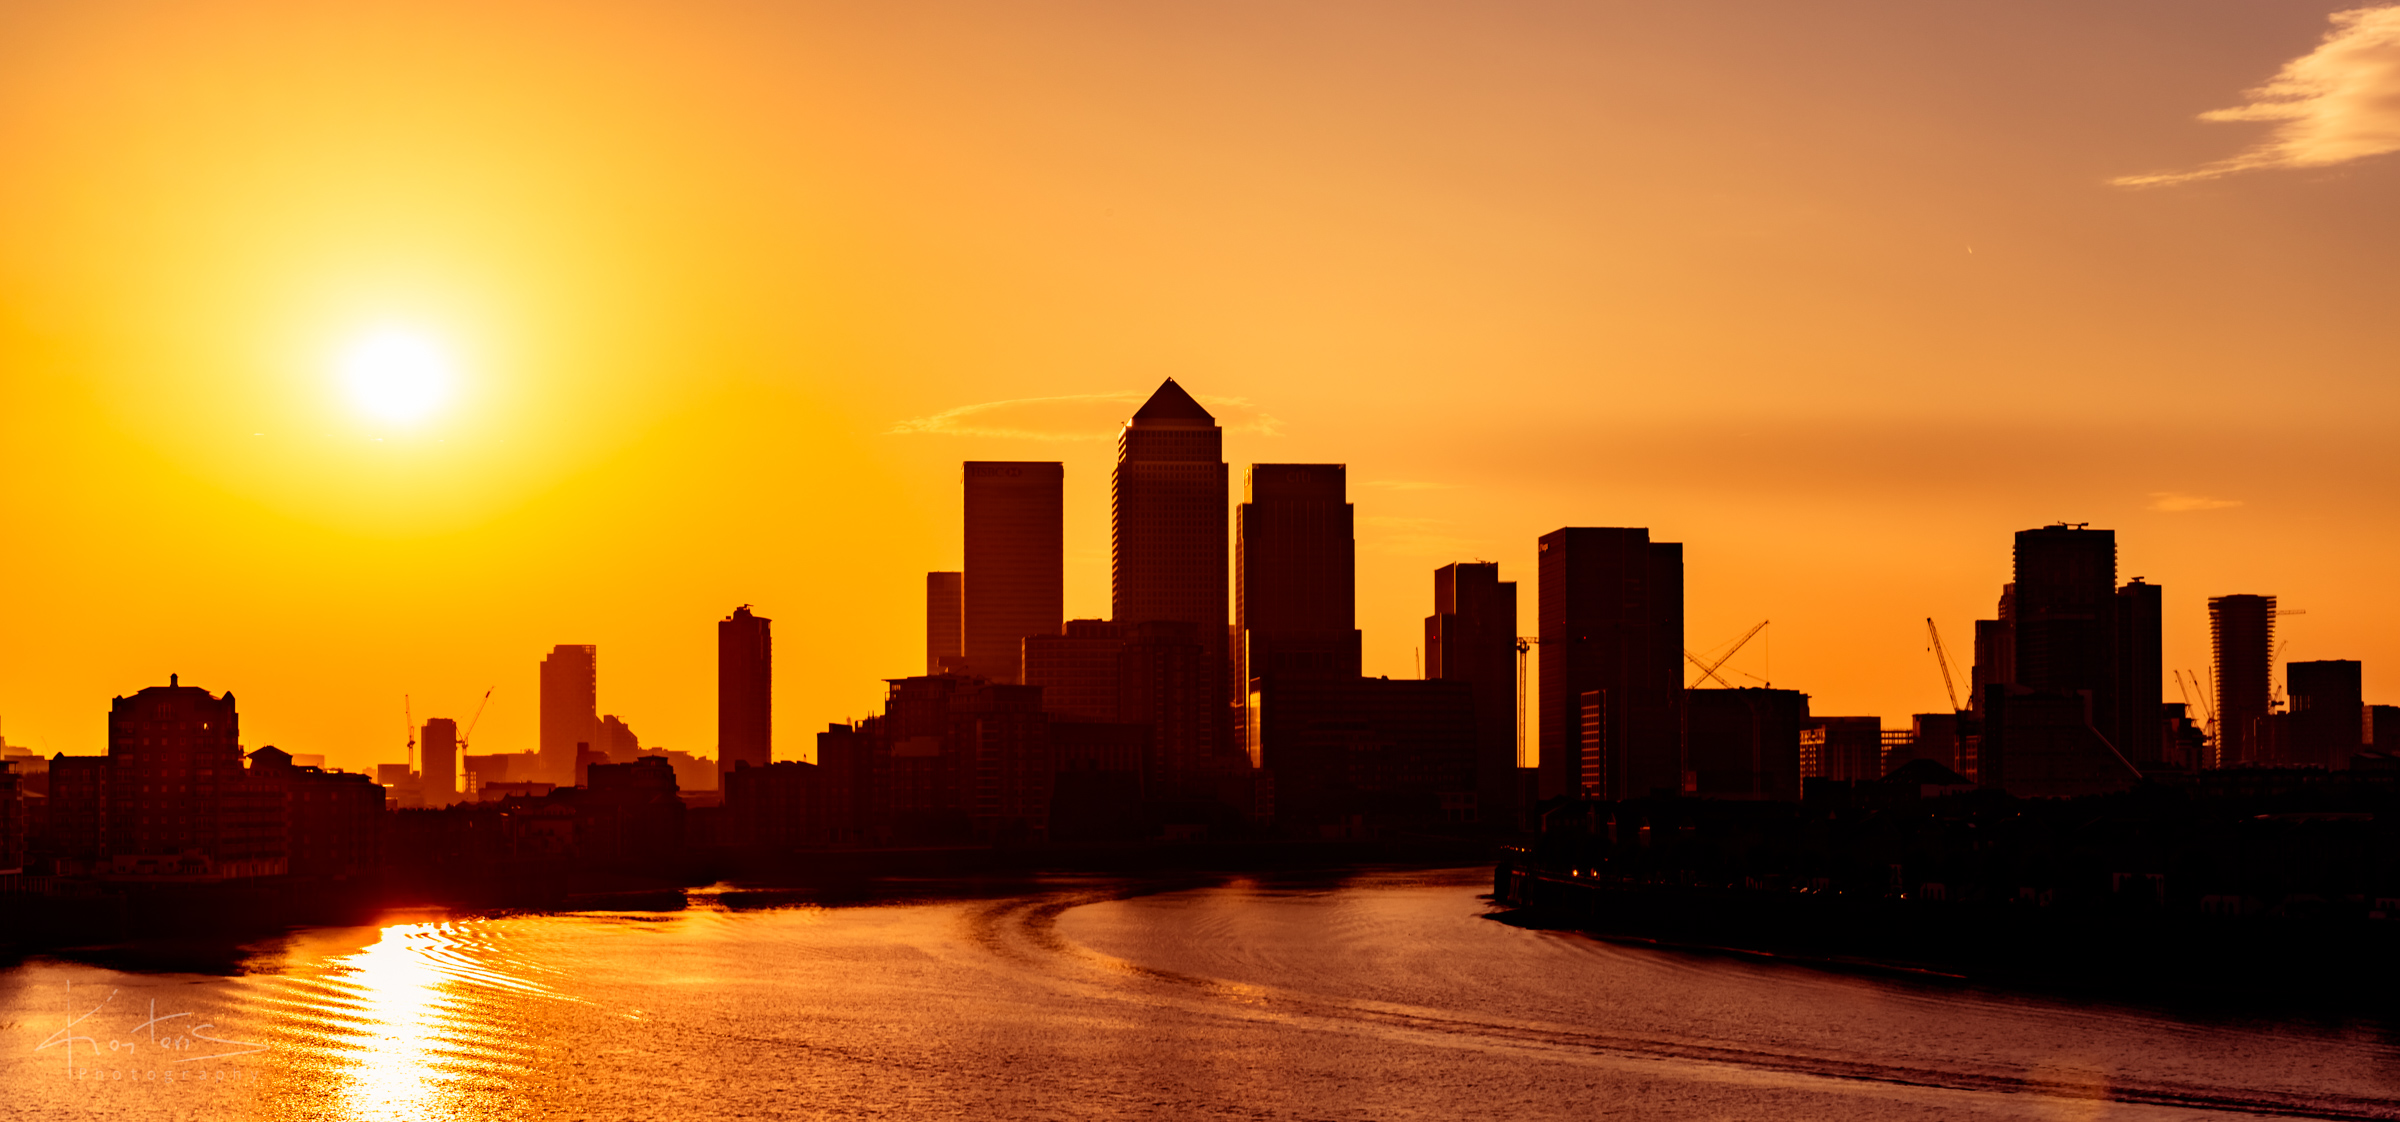 Sunrise at Canary Wharf